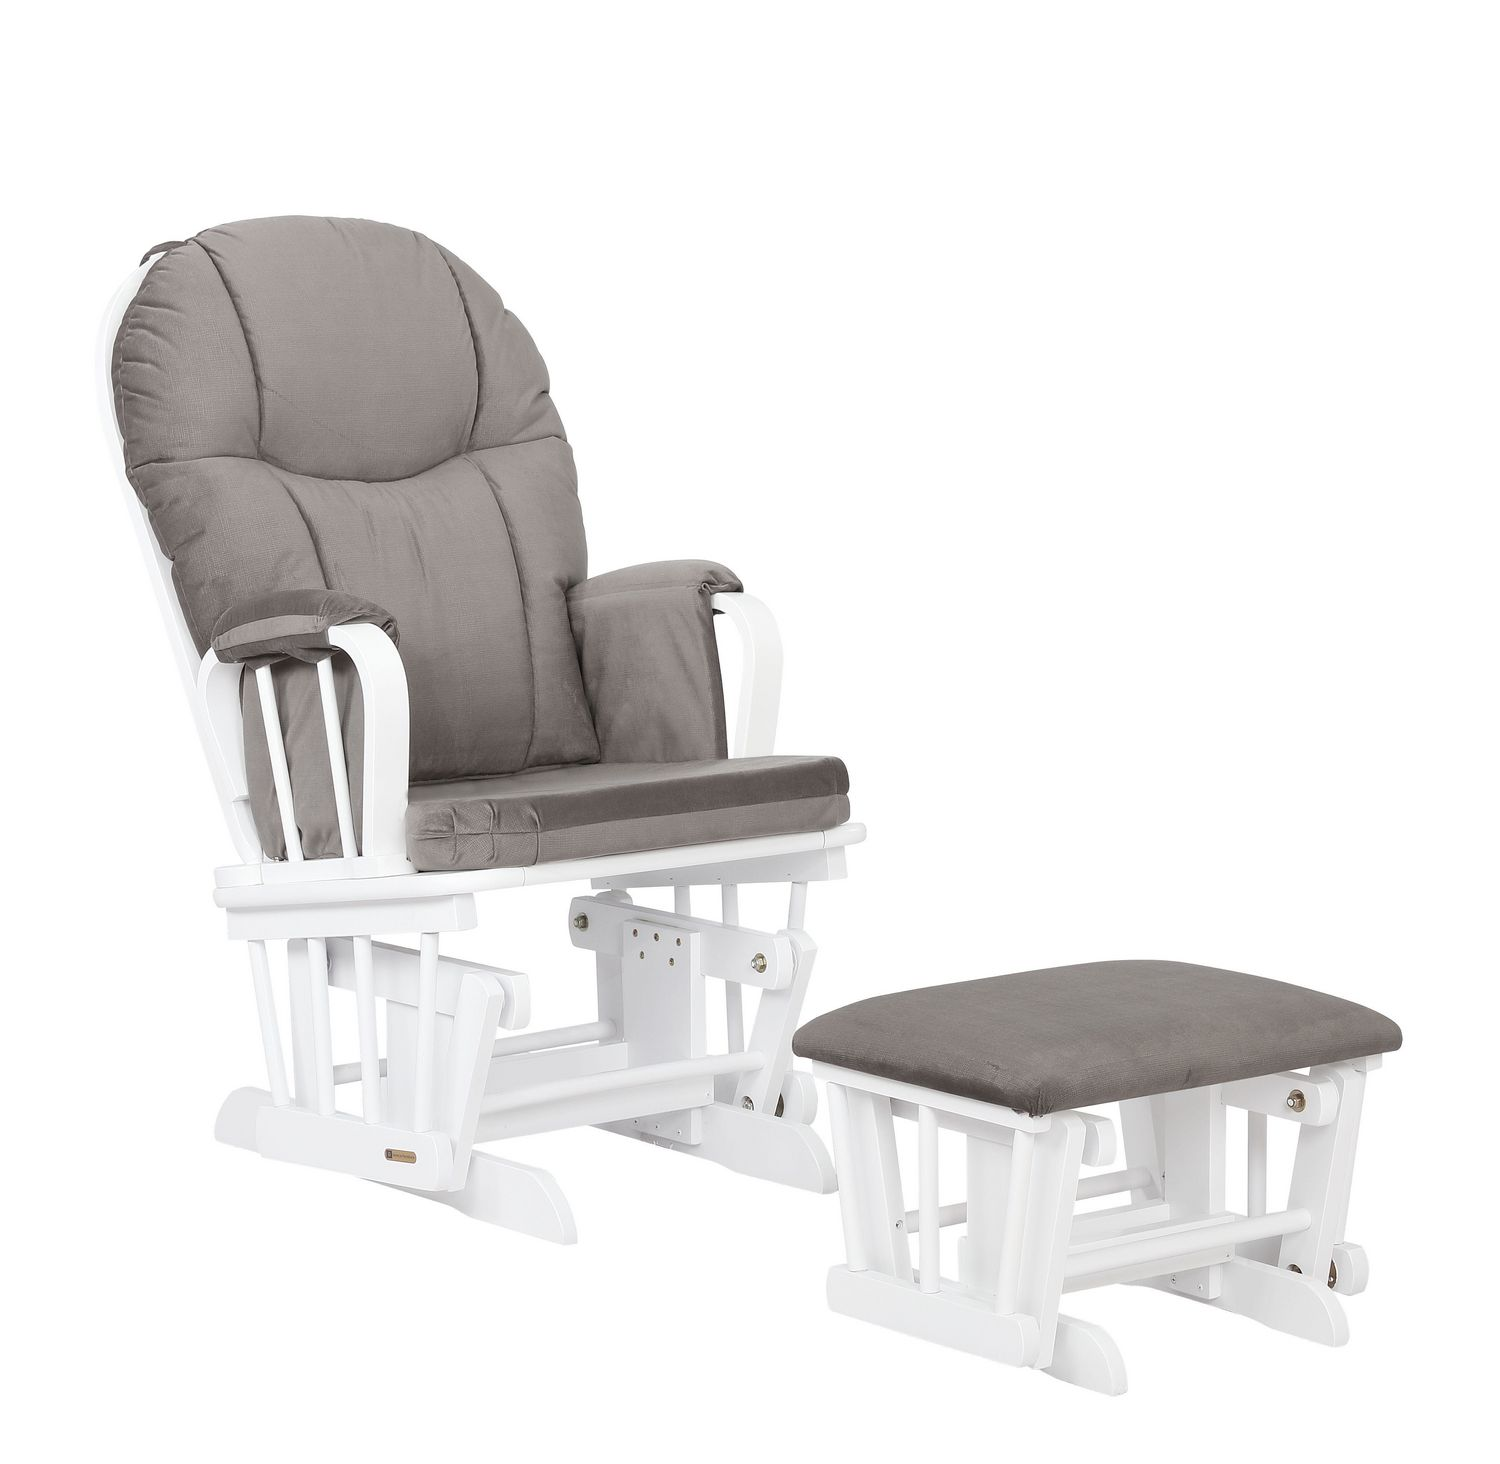 Lennox Aurora Glider Rocker Chair And Ottoman Combo White With Dark Grey